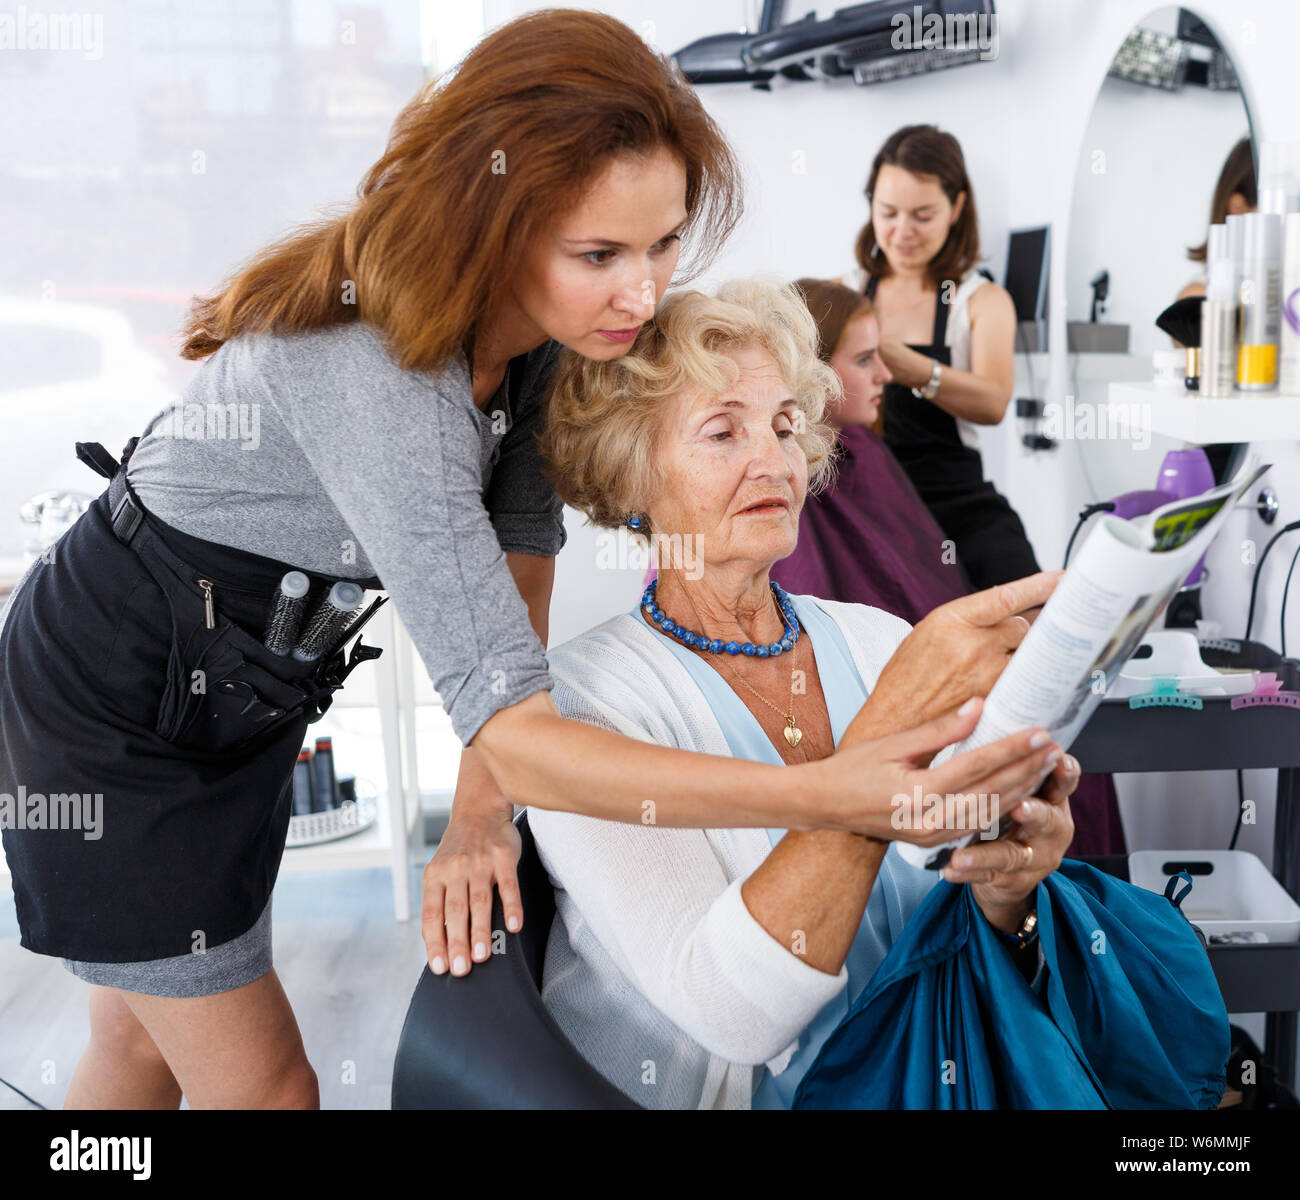 Incredible Smiling Elderly Female Client Sitting In Chair With Magazine Download Free Architecture Designs Rallybritishbridgeorg